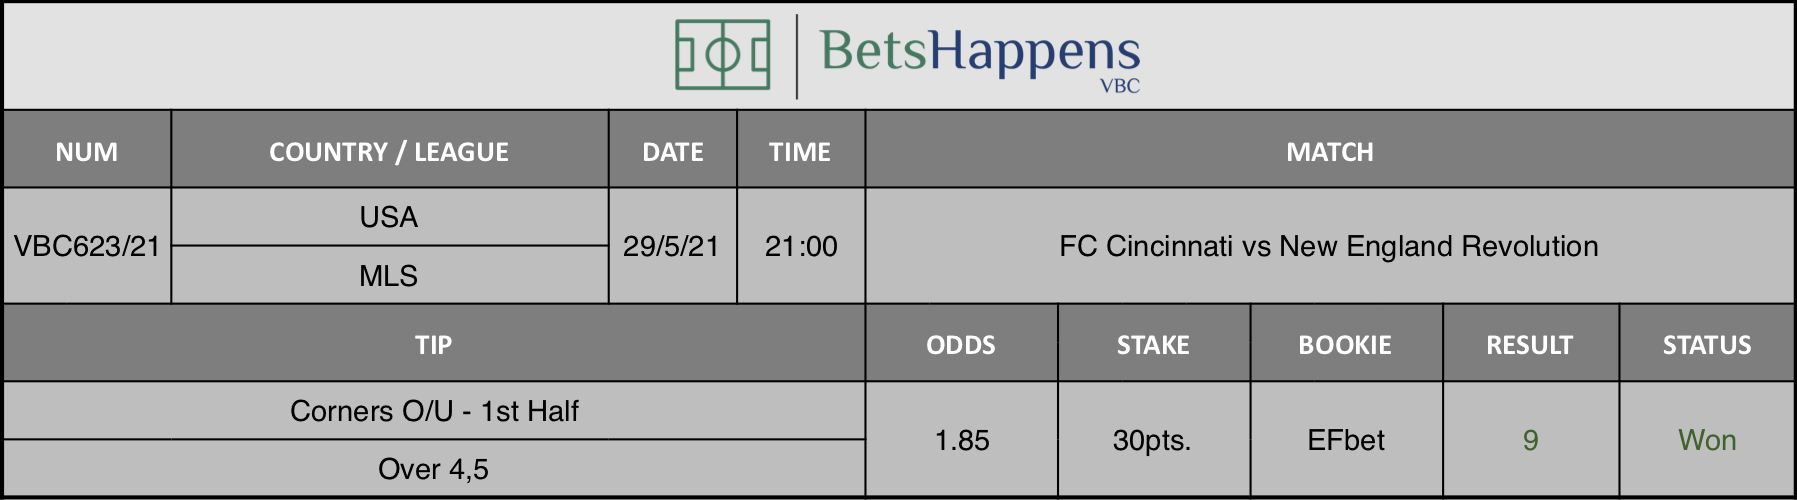 Results of our tip for the FC Cincinnati vs New England Revolution match where Corners O/U - 1st Half Over 4,5 is recommended.